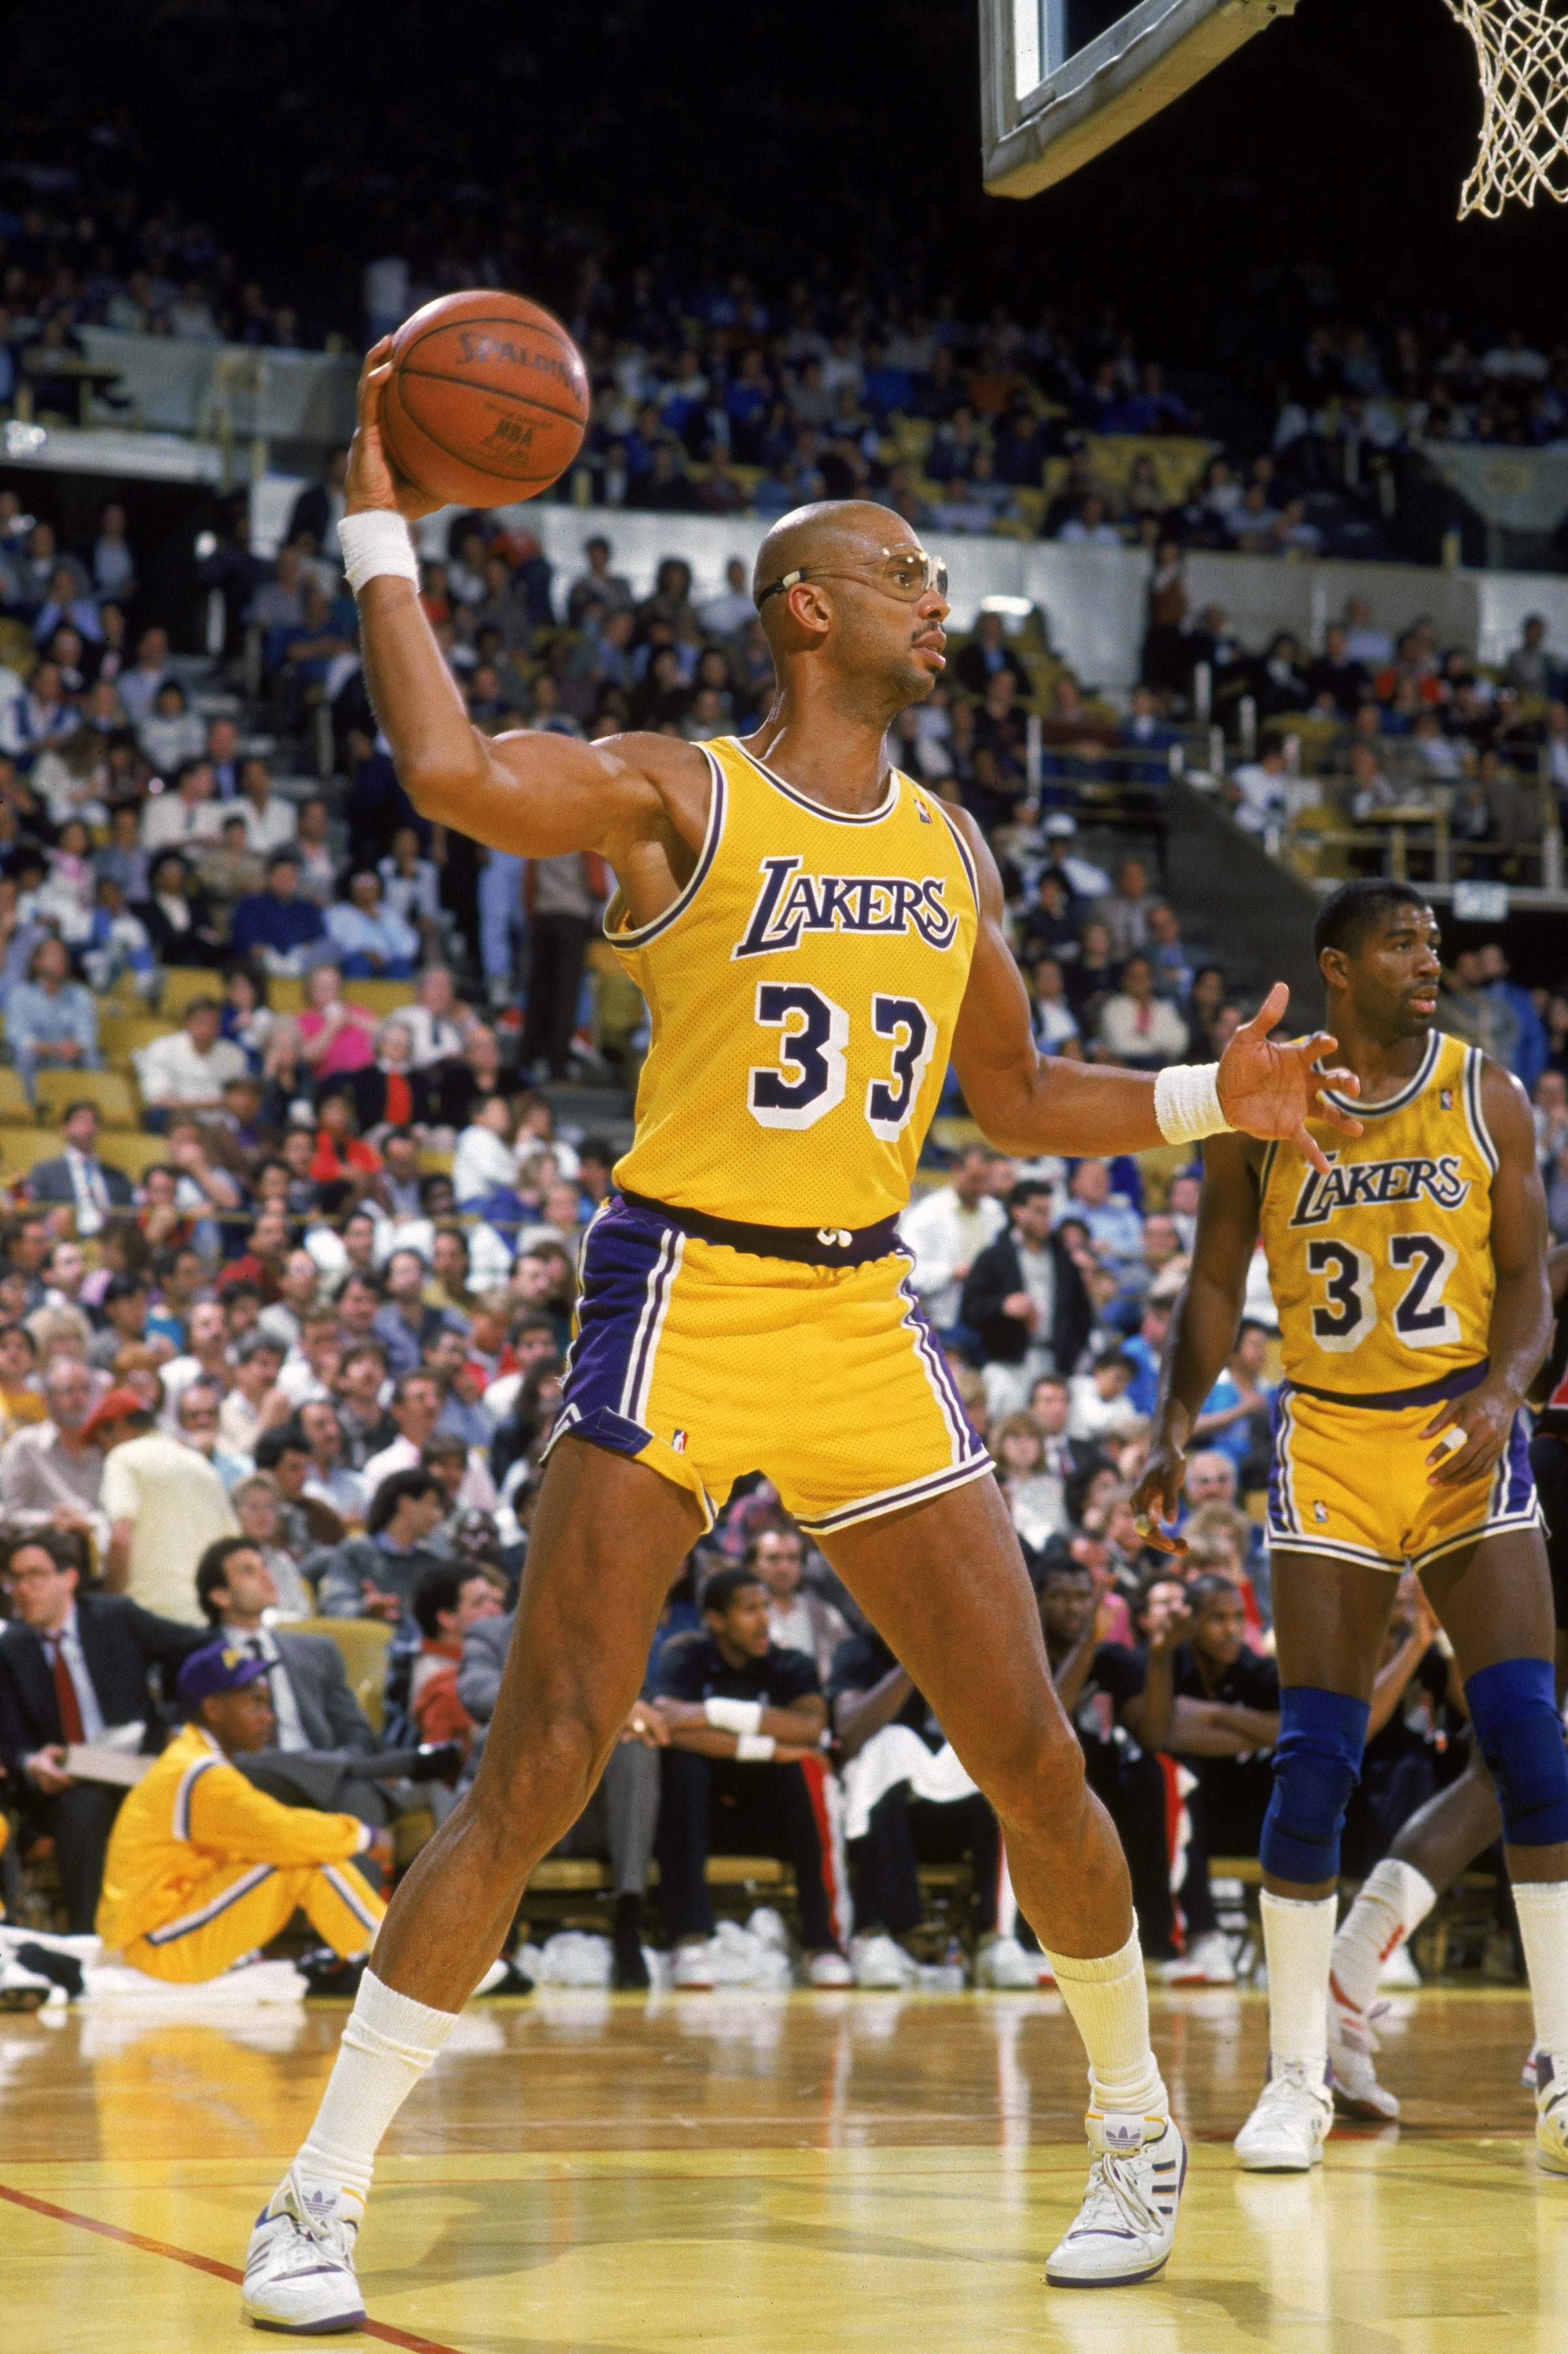 Kareem Abdul-Jabbar (Los Angeles Lakers) en 1987